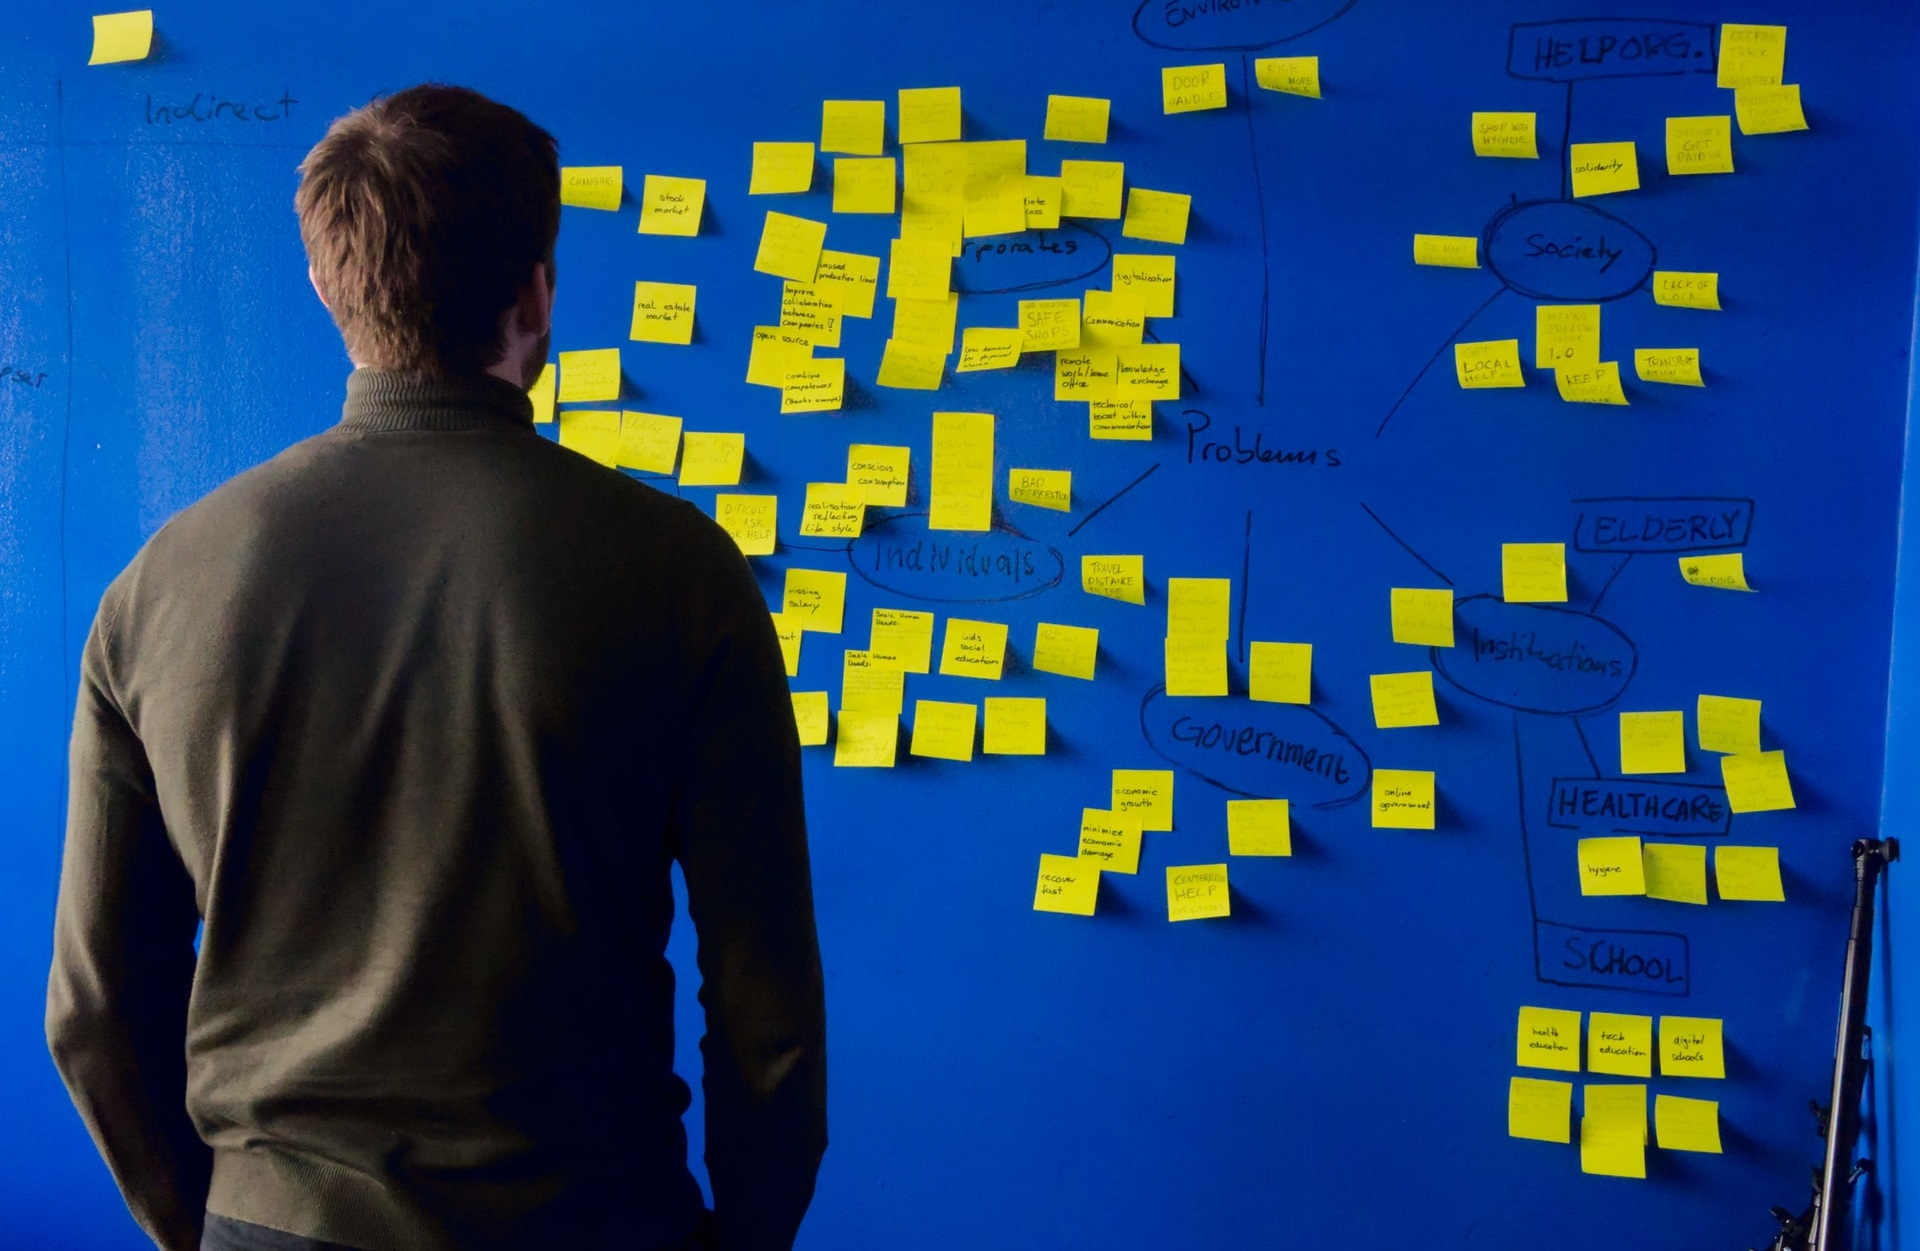 Immersive storming: brainstorming with a virtual reality headset